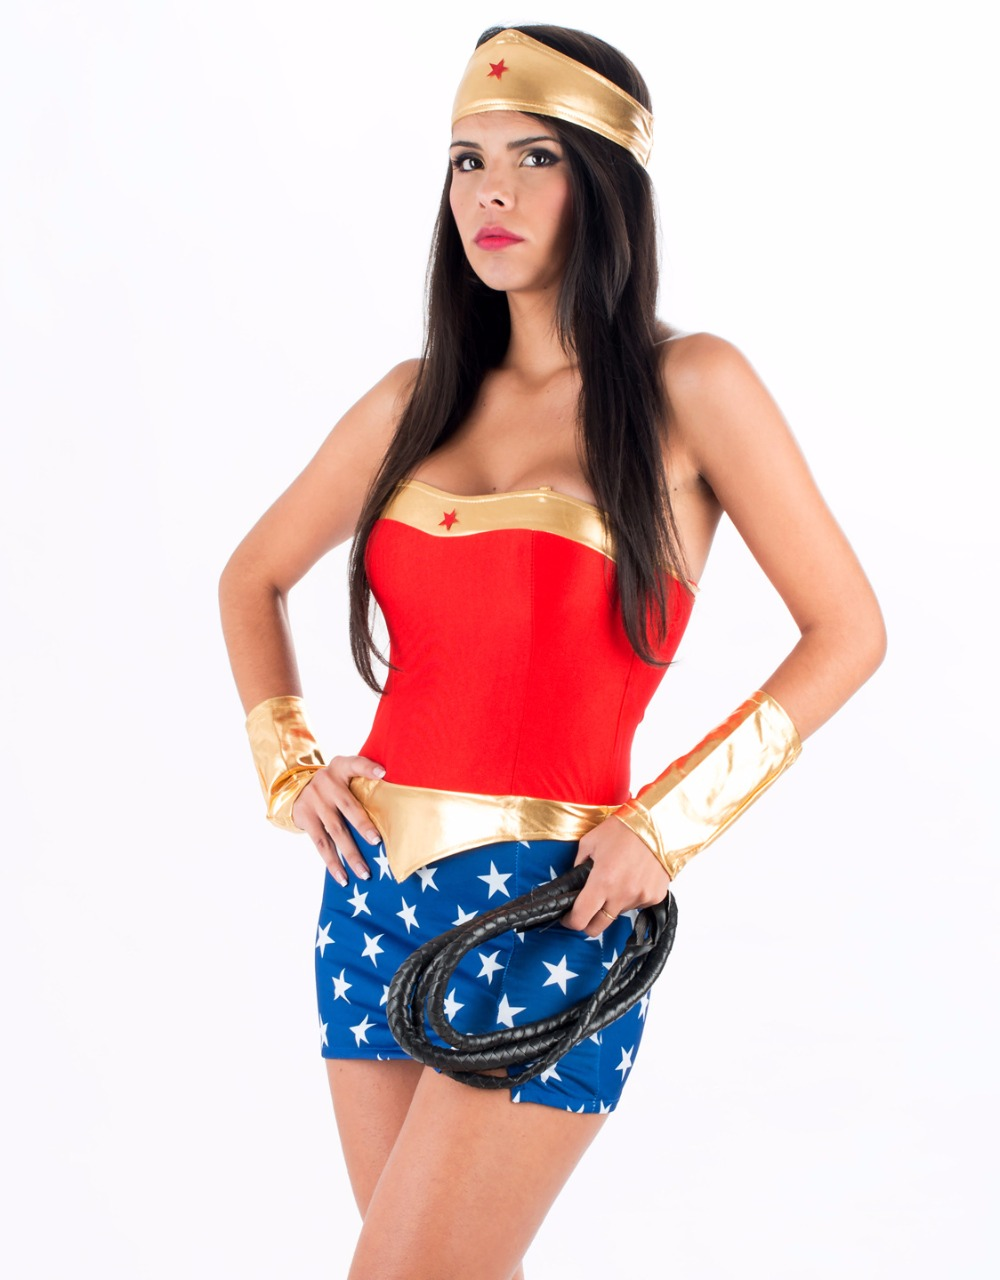 Plus Size Halloween Costumes 2019.Us 17 71 36 Off 2019 Hot Sale High Quality Halloween Costumes Women Fantasias Party Superhero Sexy Wonder Woman Costume Plus Size M Xl In Movie Tv